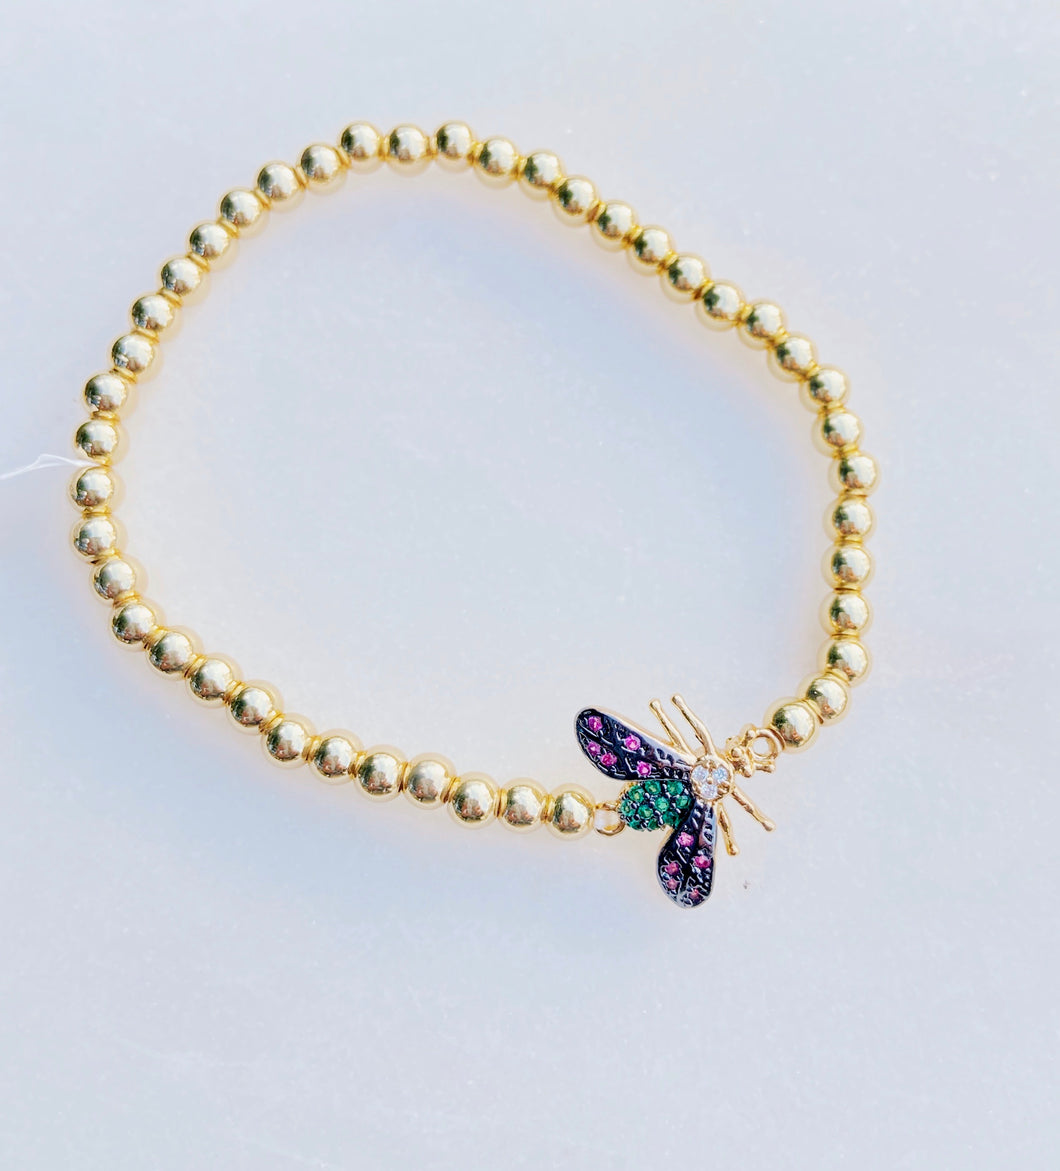 Bee Your Own Colors Brass Stretch Bracelet with CZ Stones